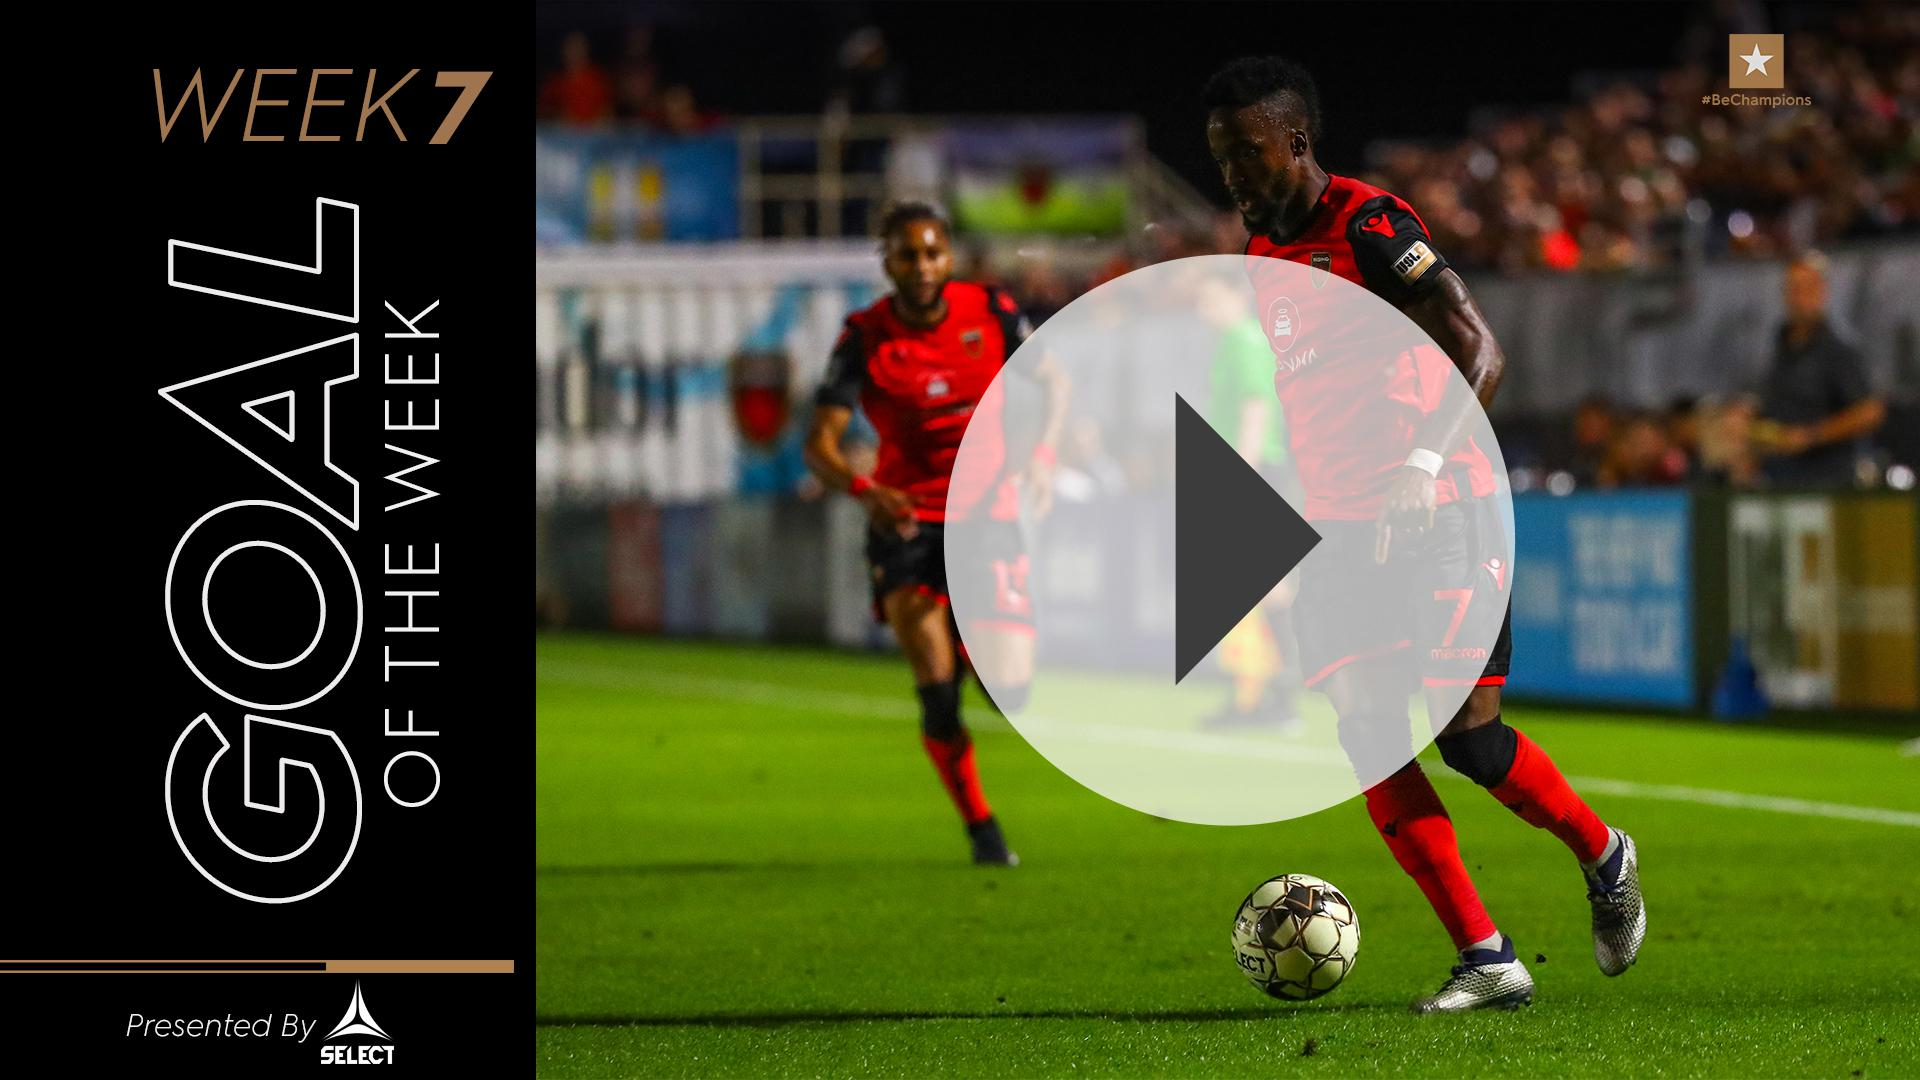 USL Championship Fans' Choice Goal of the Week – Week 7